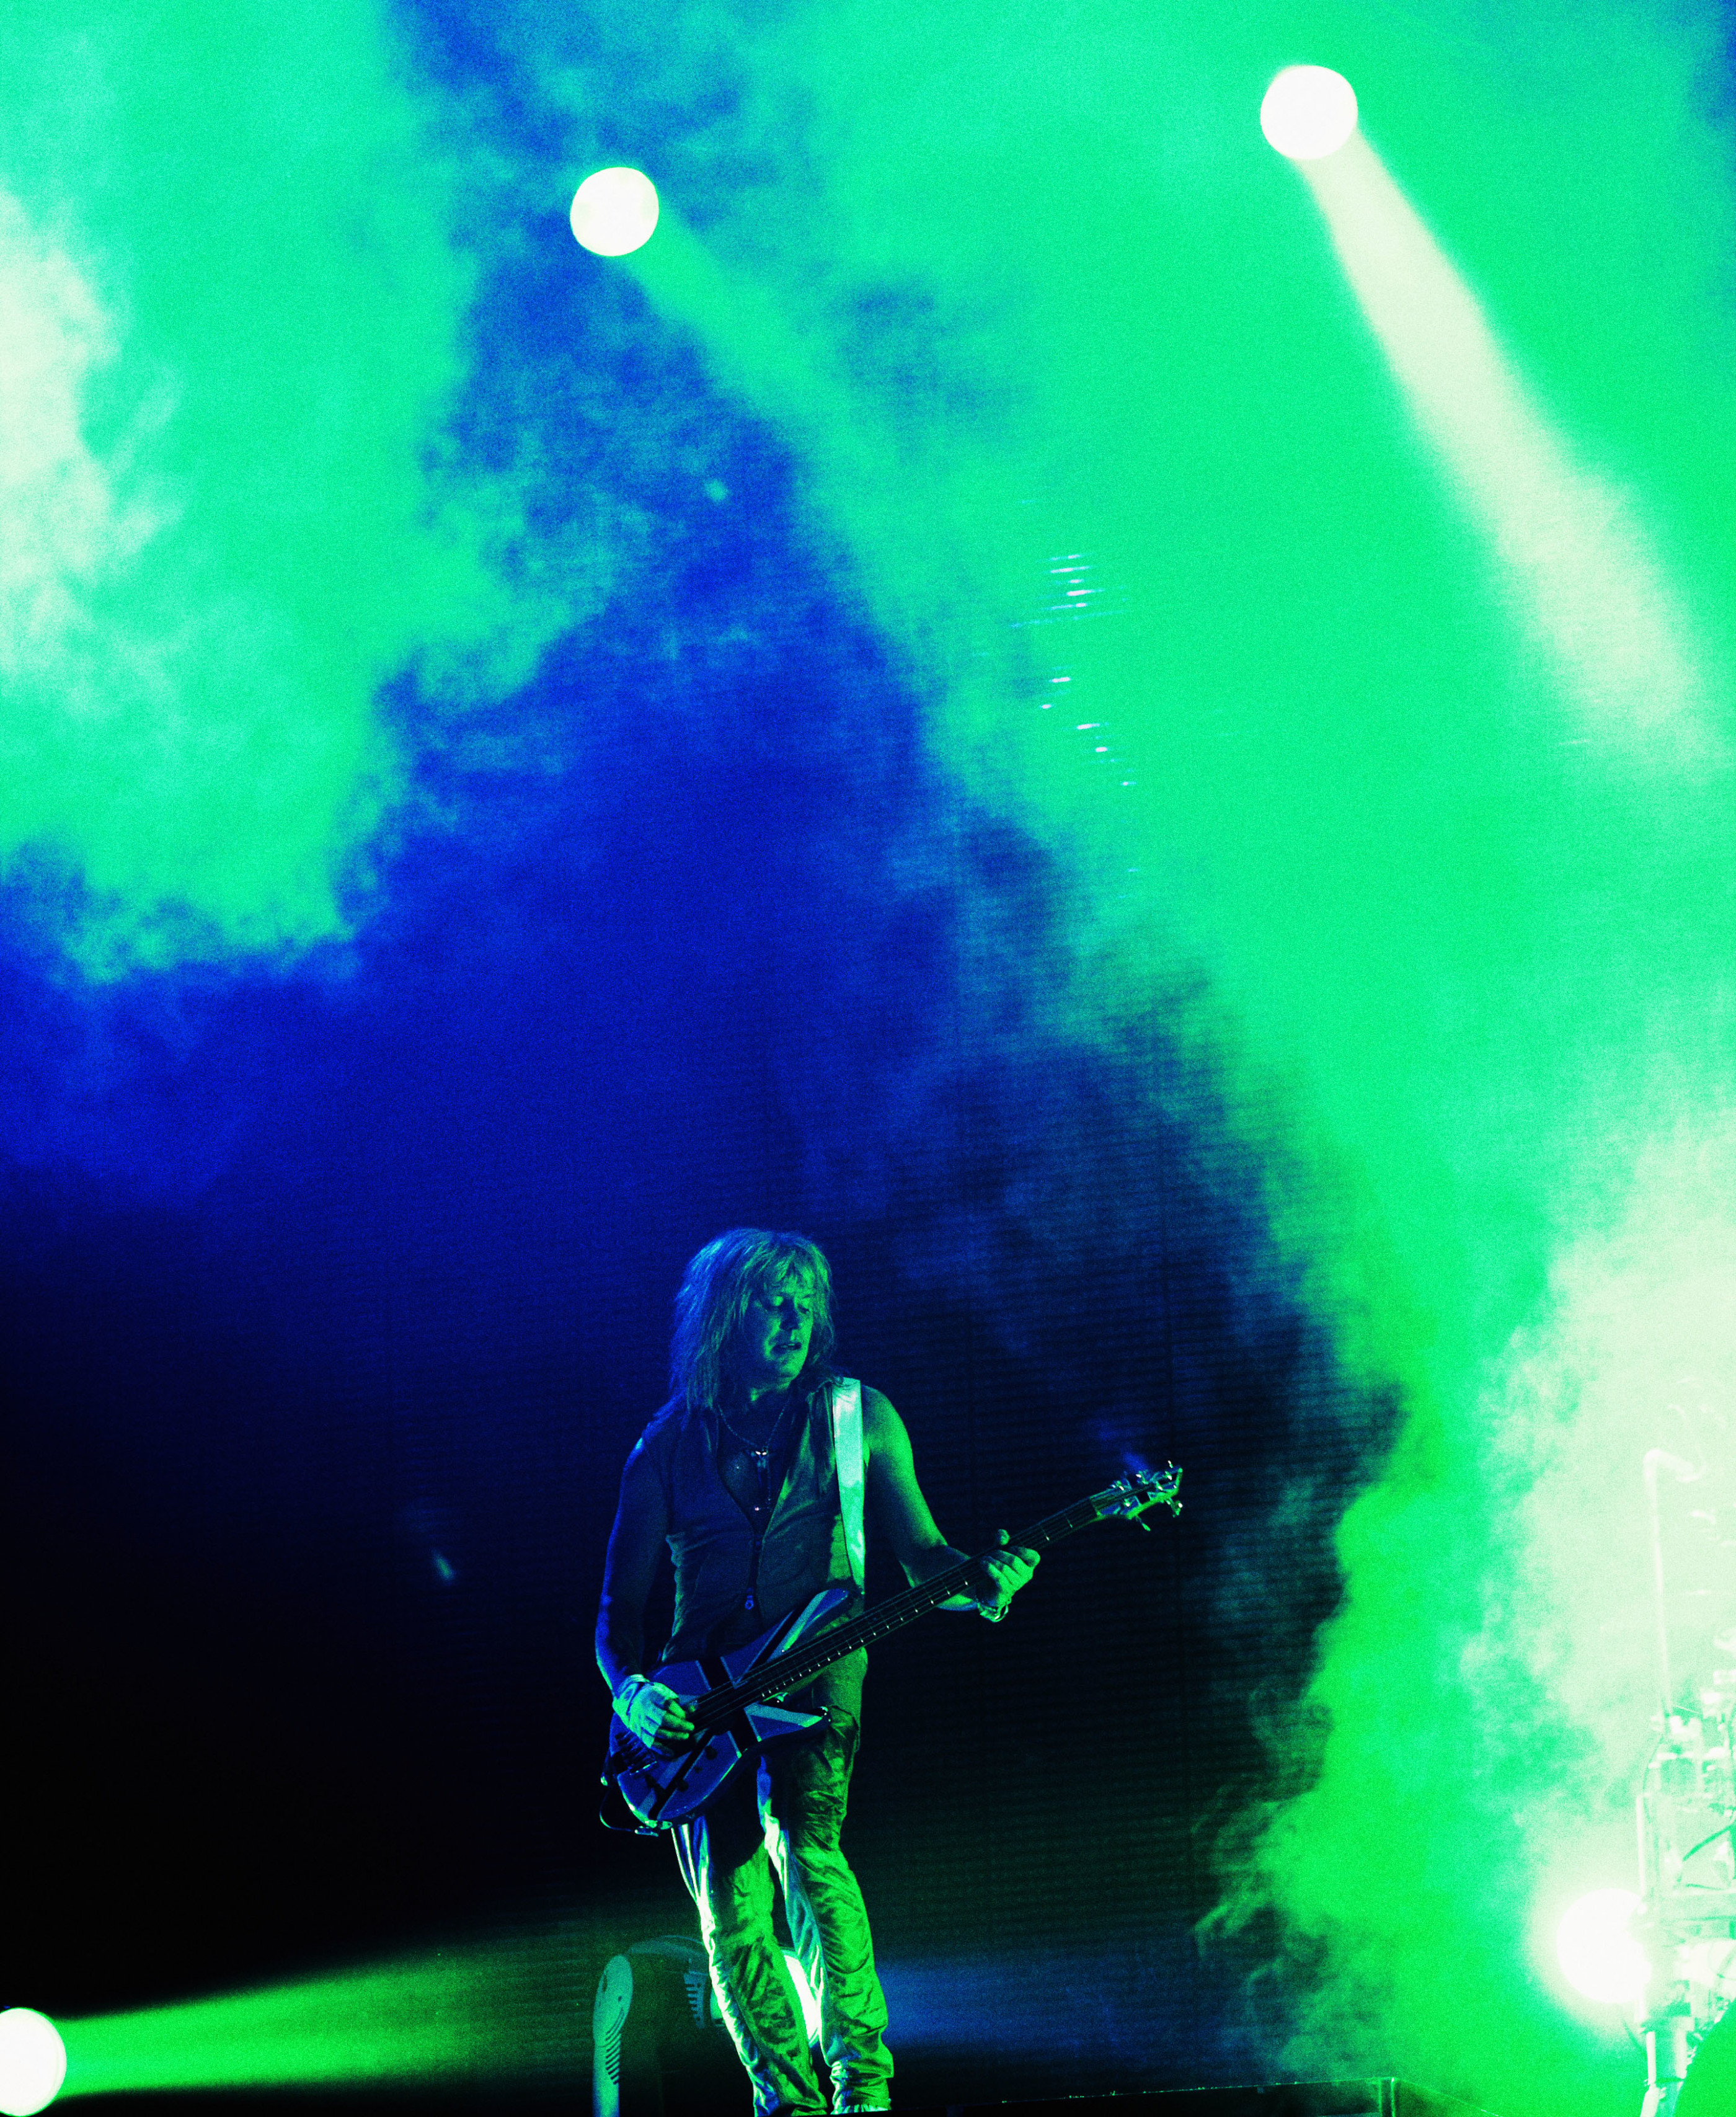 Rick Savage def leppard sheffield england in 2008 photographed b